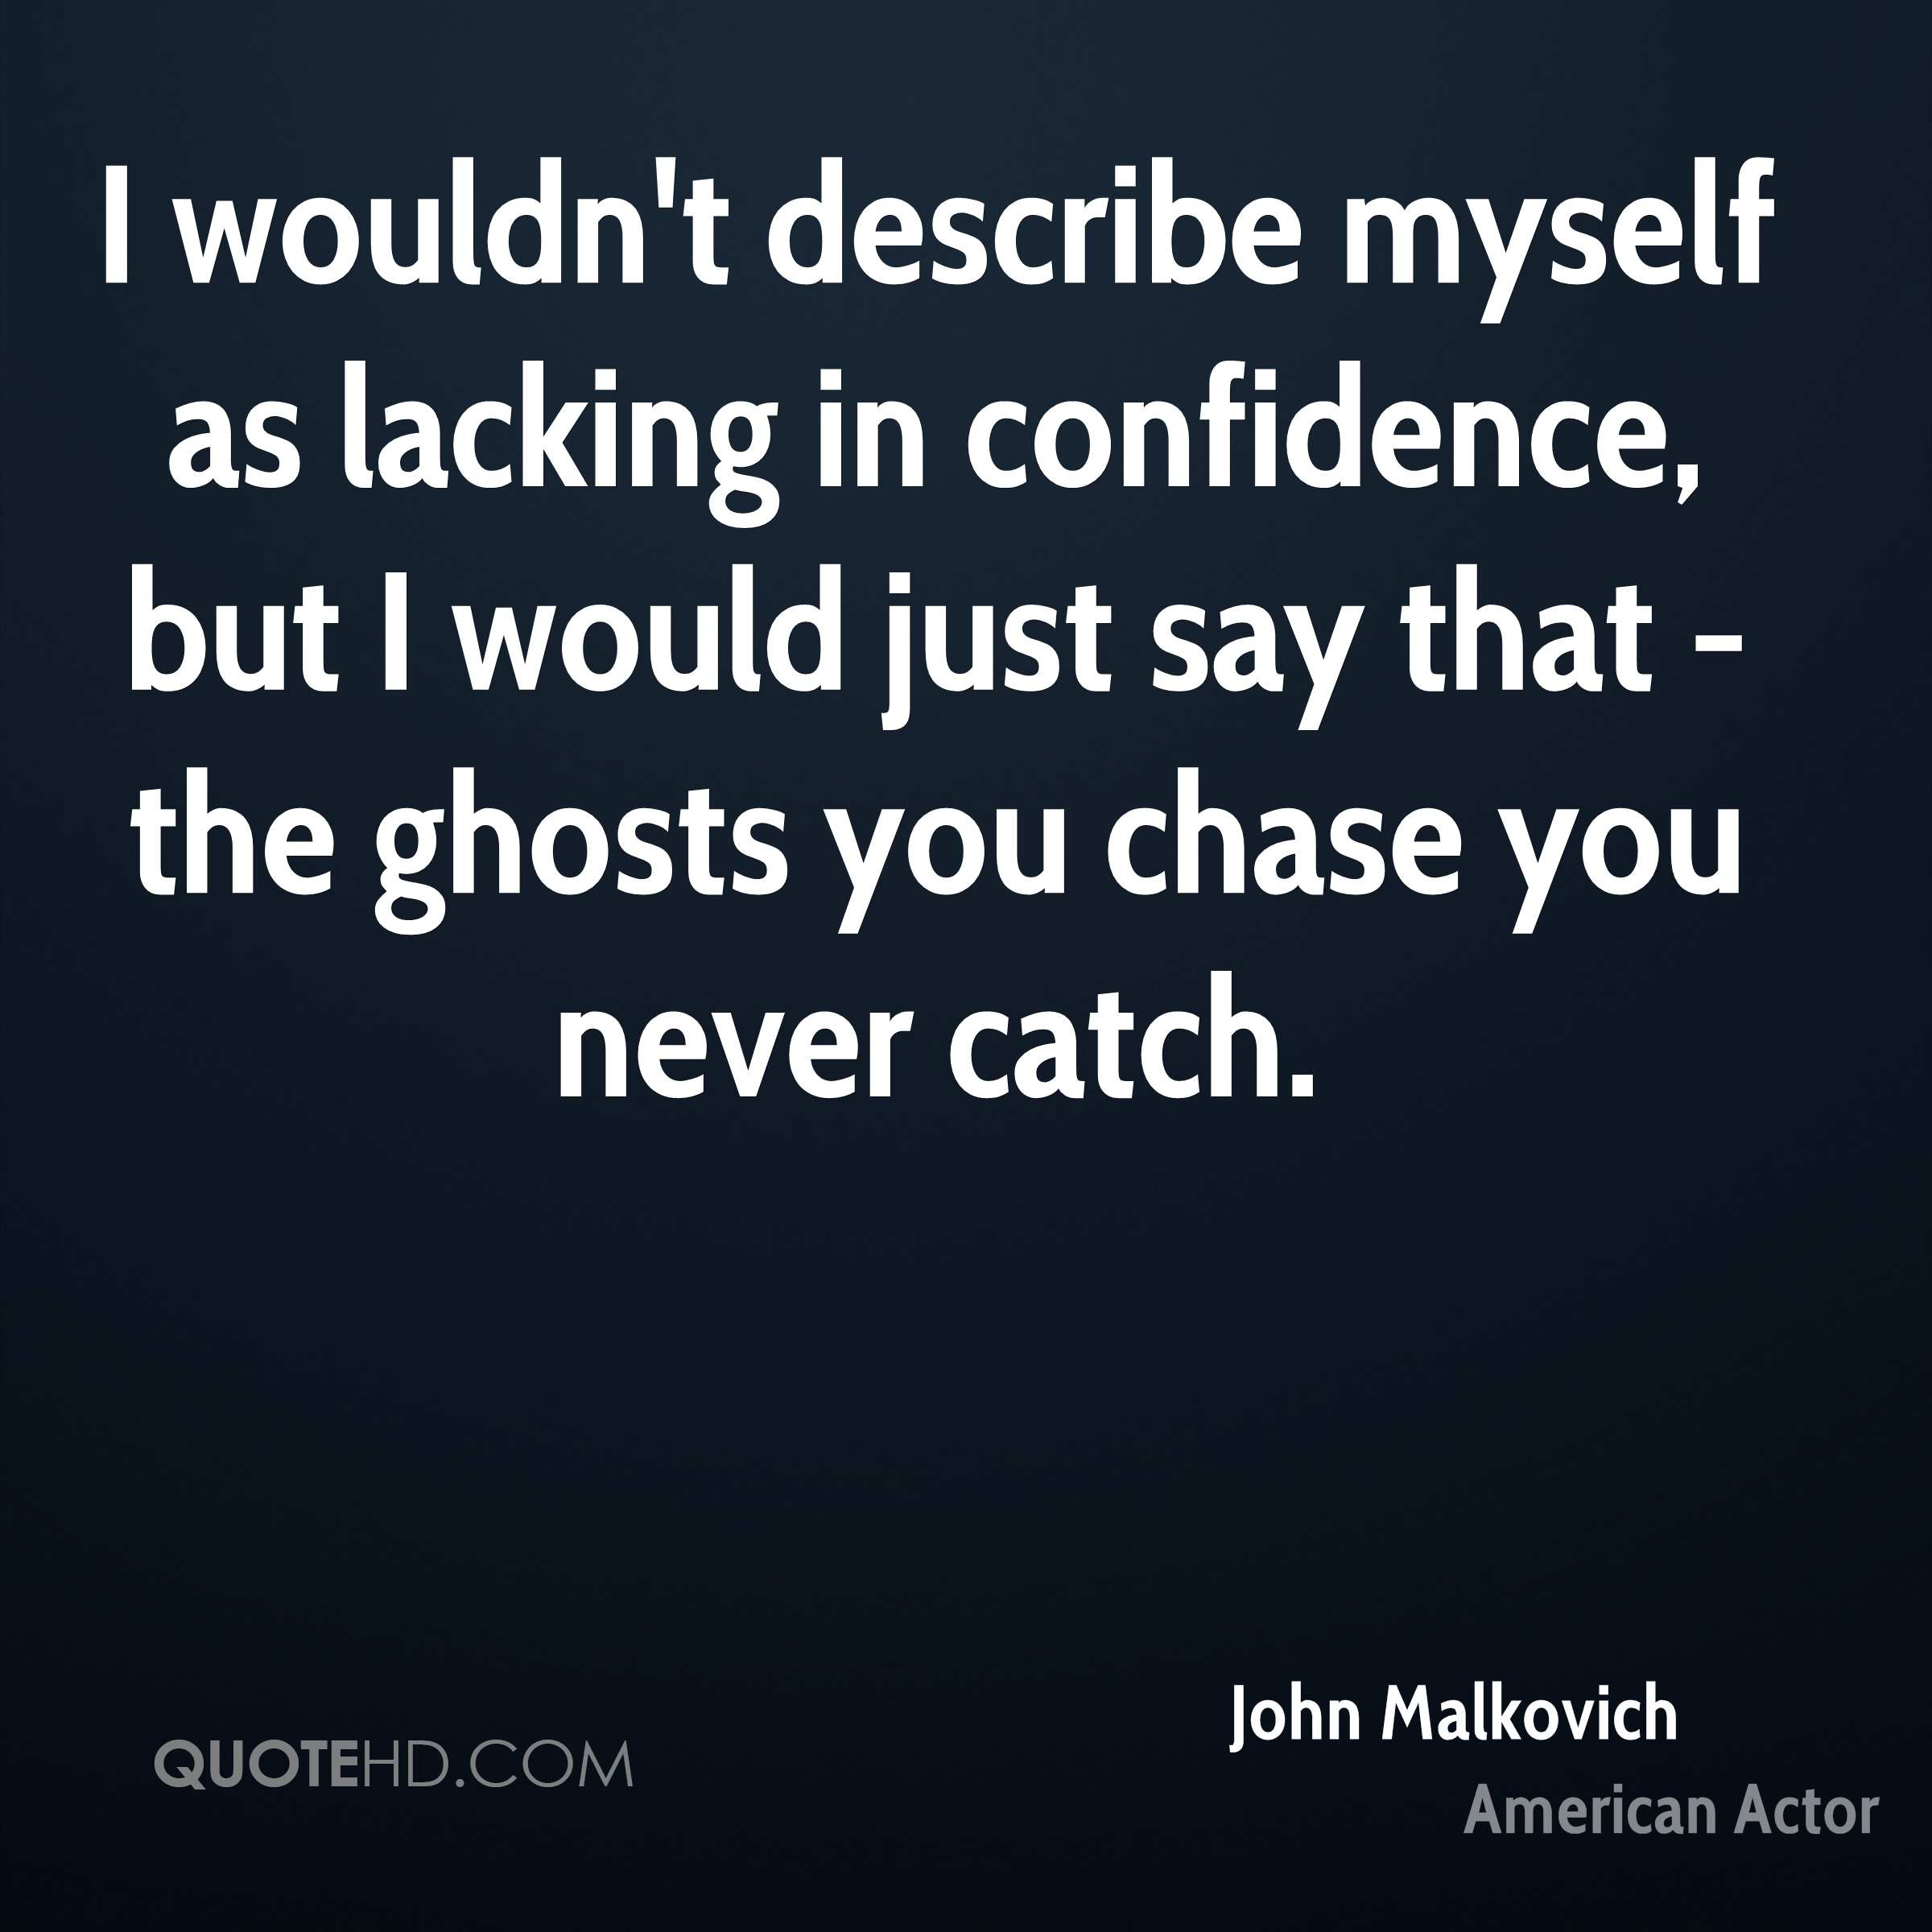 I wouldn't describe myself as lacking in confidence, but I would just say that - the ghosts you chase you never catch.